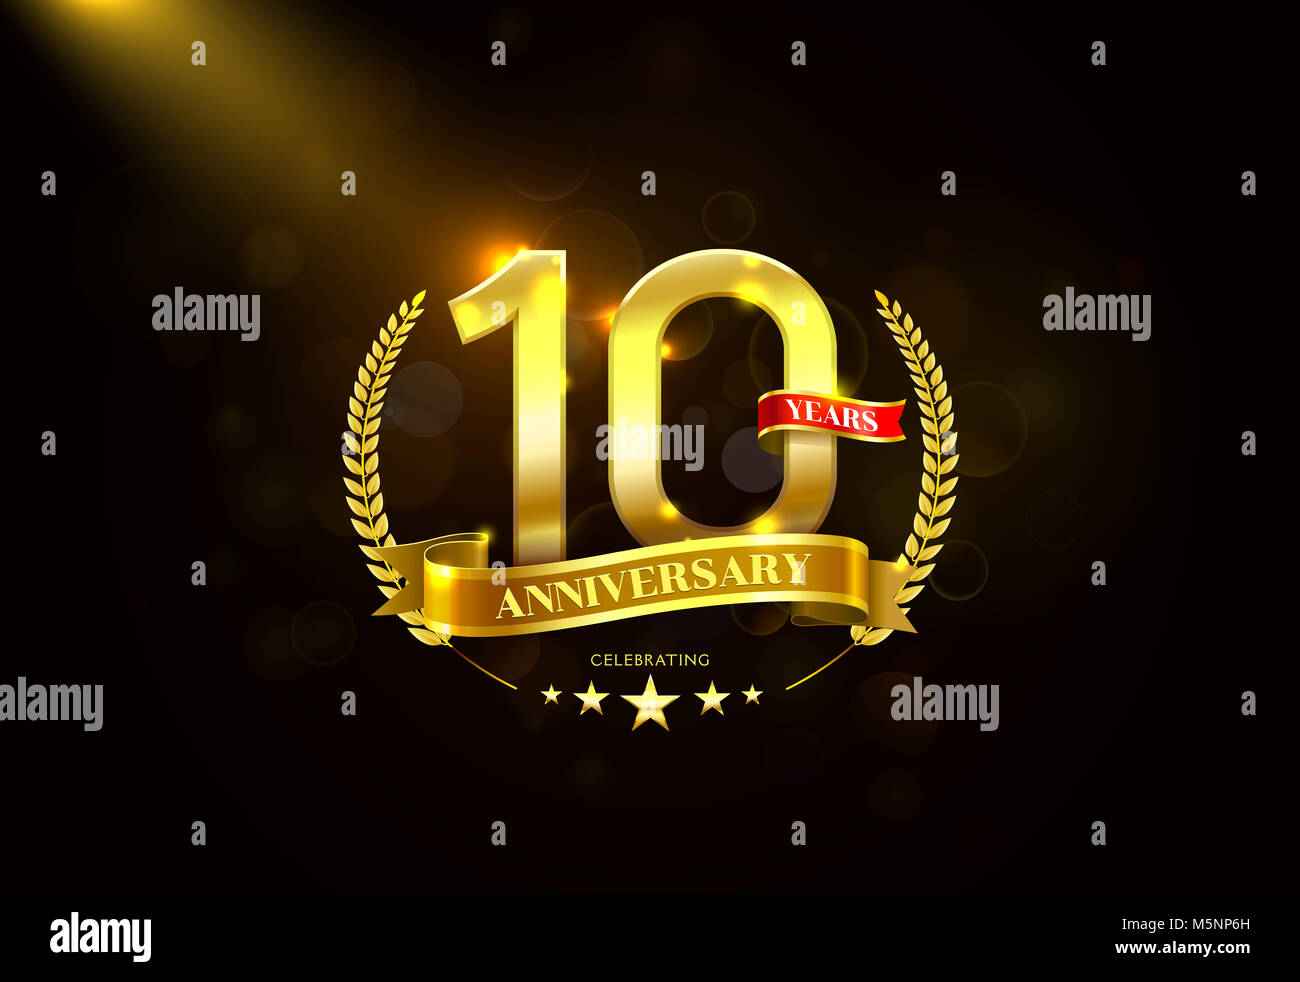 10th anniversary logo stock photos 10th anniversary logo stock 10 years anniversary with laurel wreath golden ribbon vector illustration stock image biocorpaavc Images